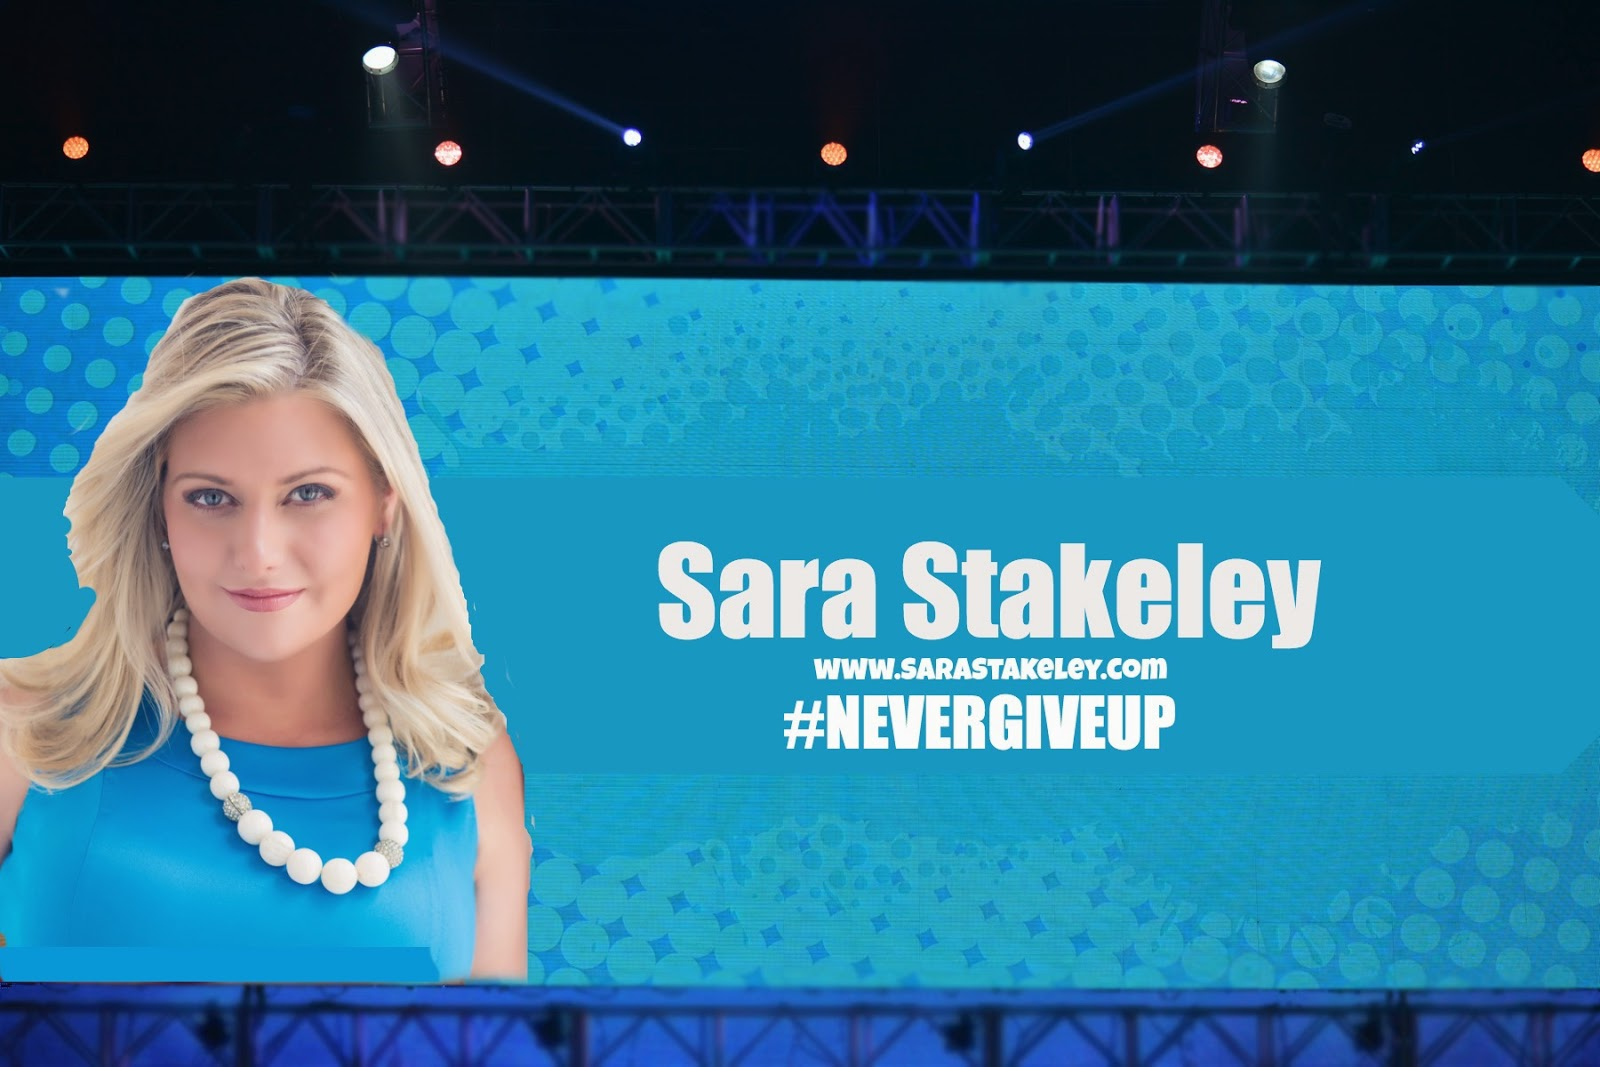 Sara Stakeley, Star Diamond Coach